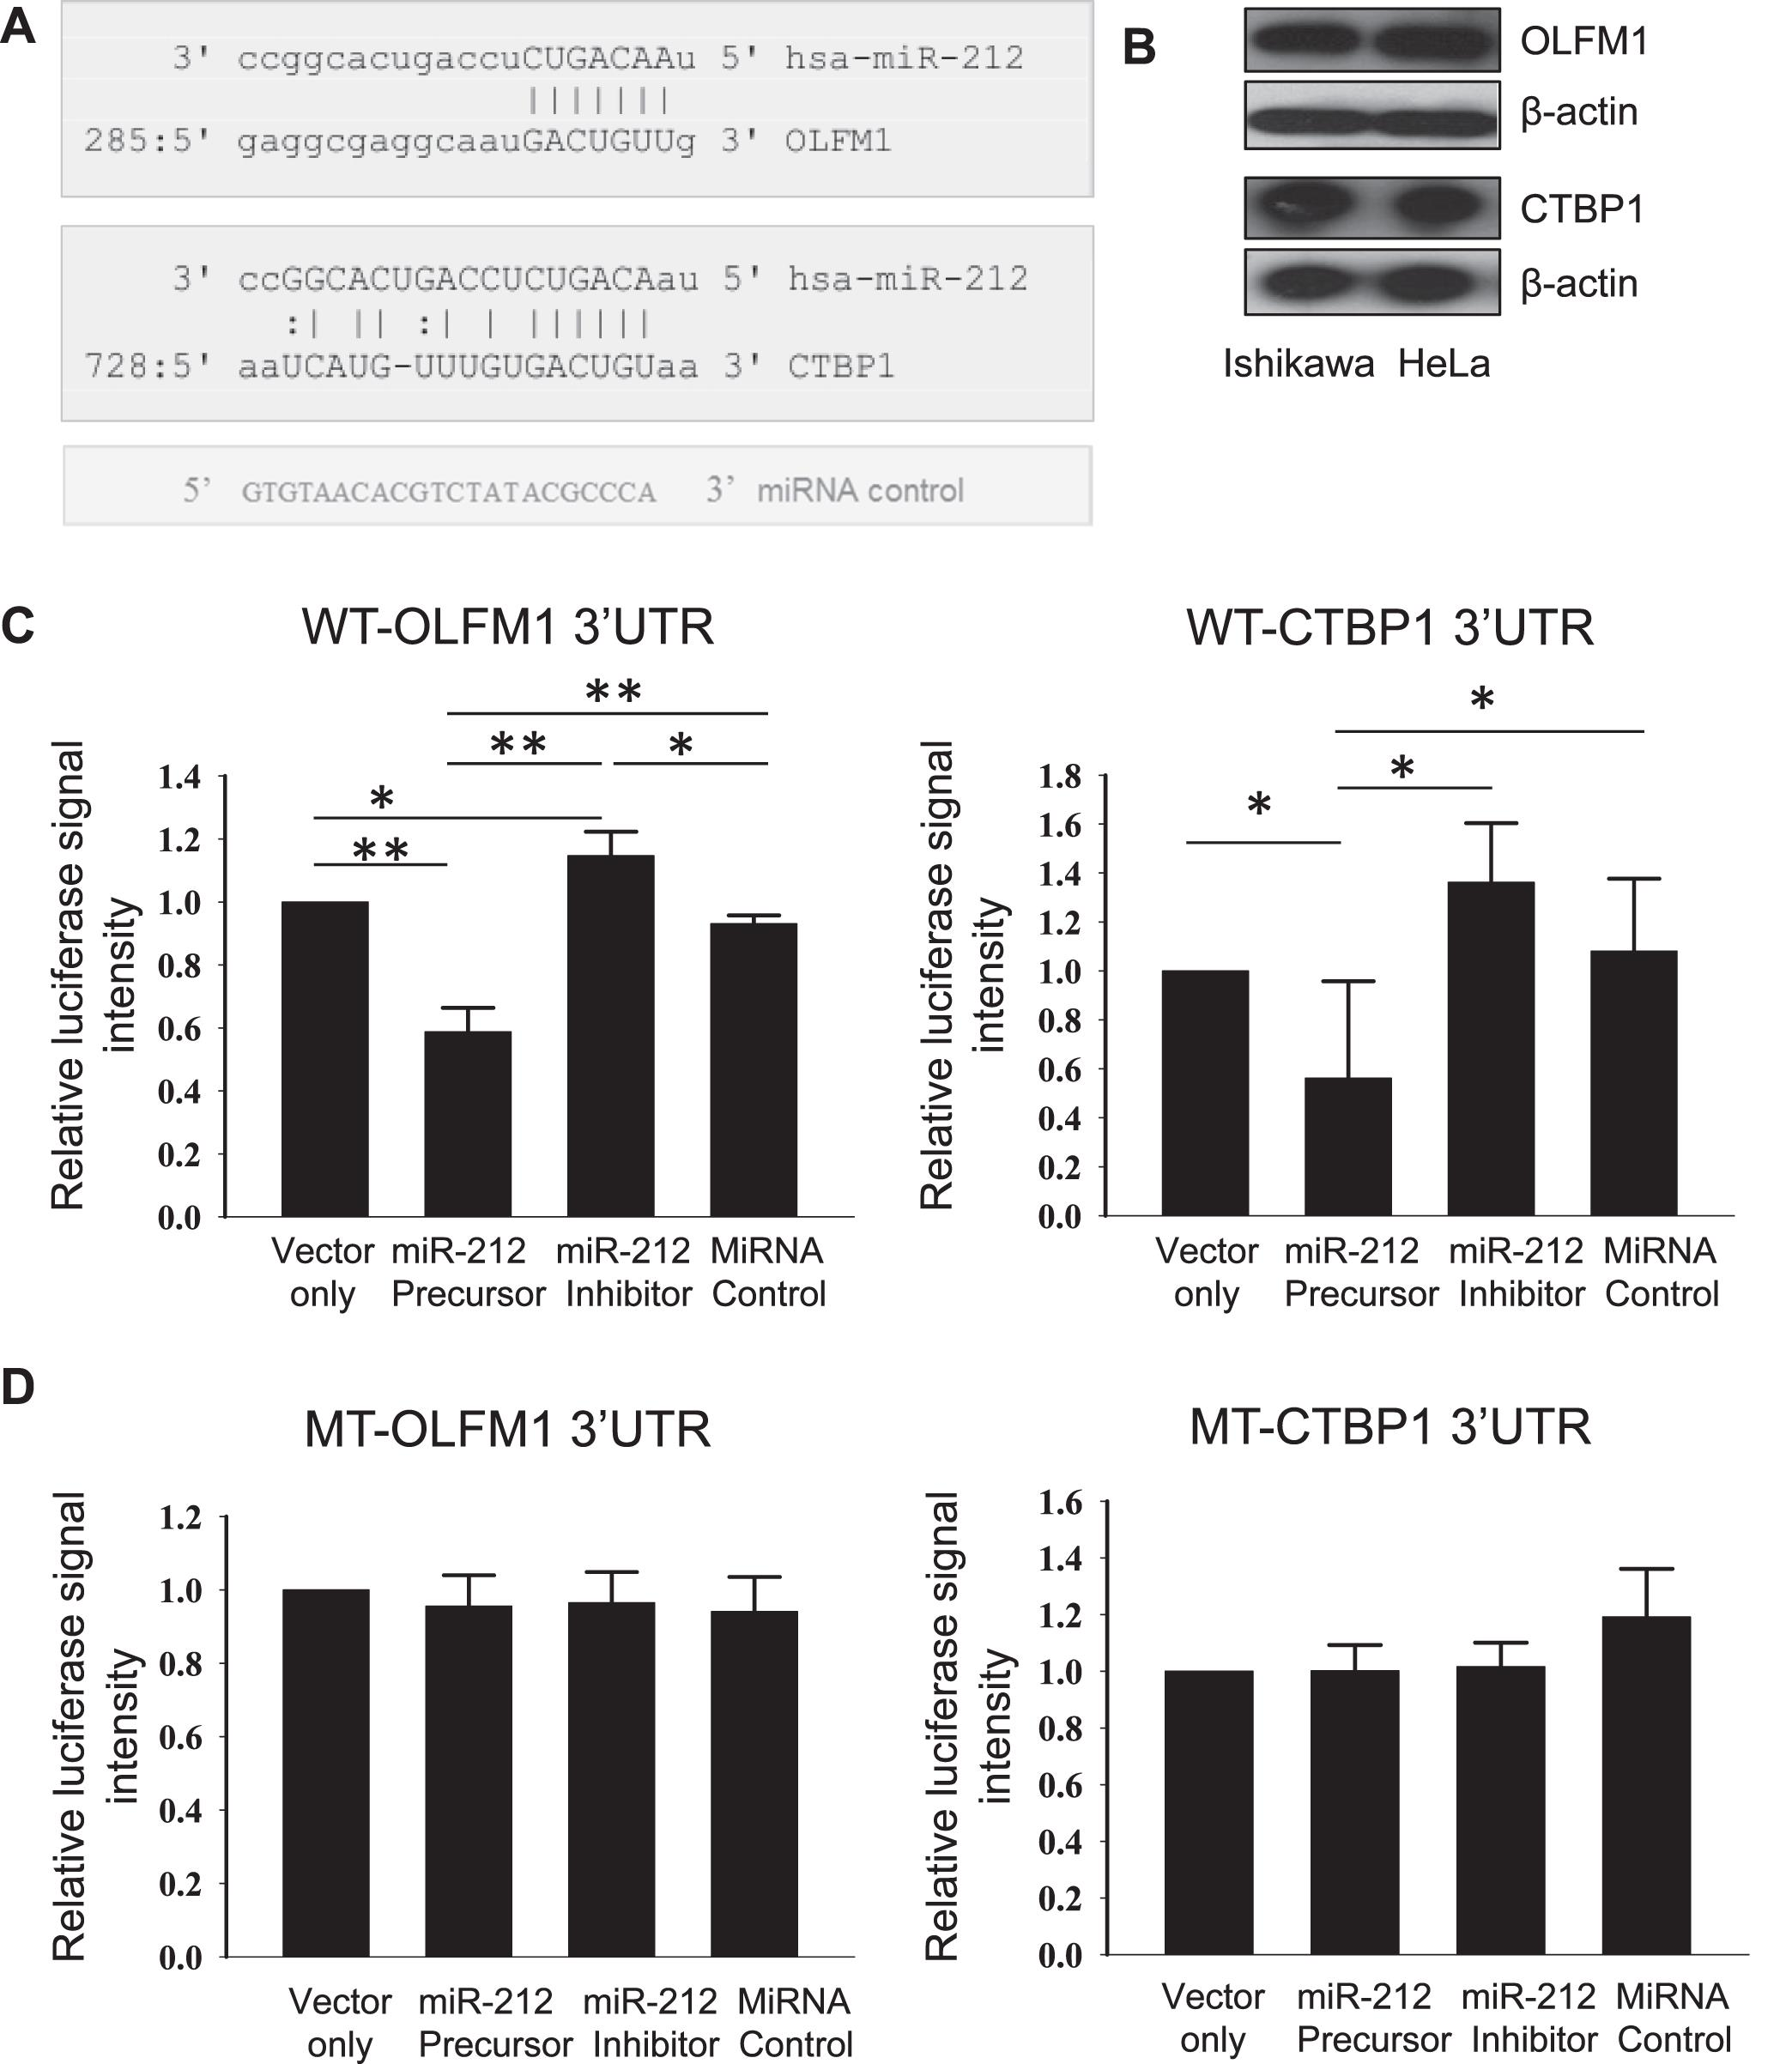 MicroRNA-212 Regulates the Expression of Olfactomedin 1 and